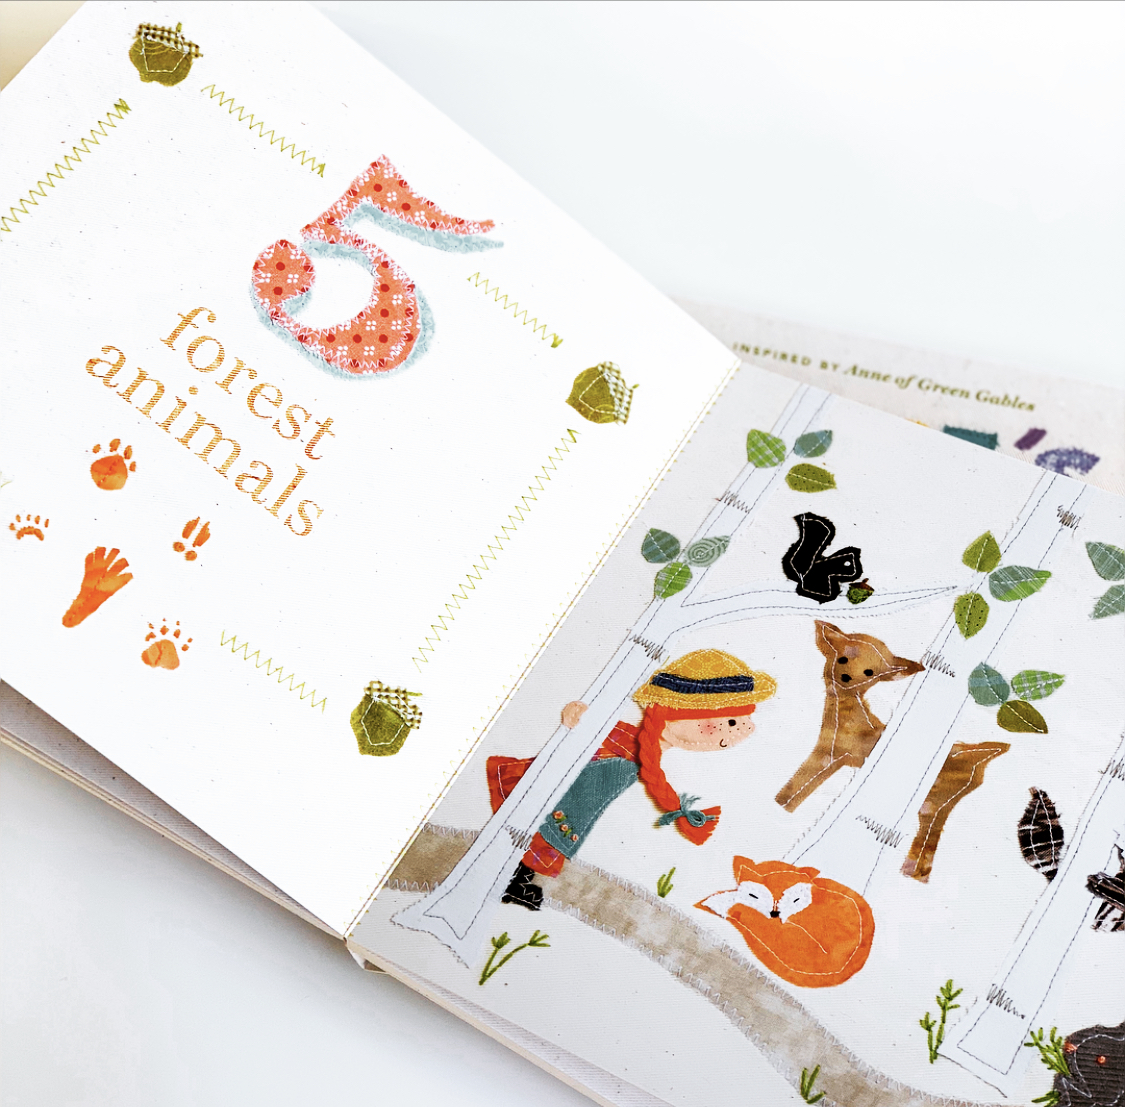 Each spread portrays a number with an adorable illustration.